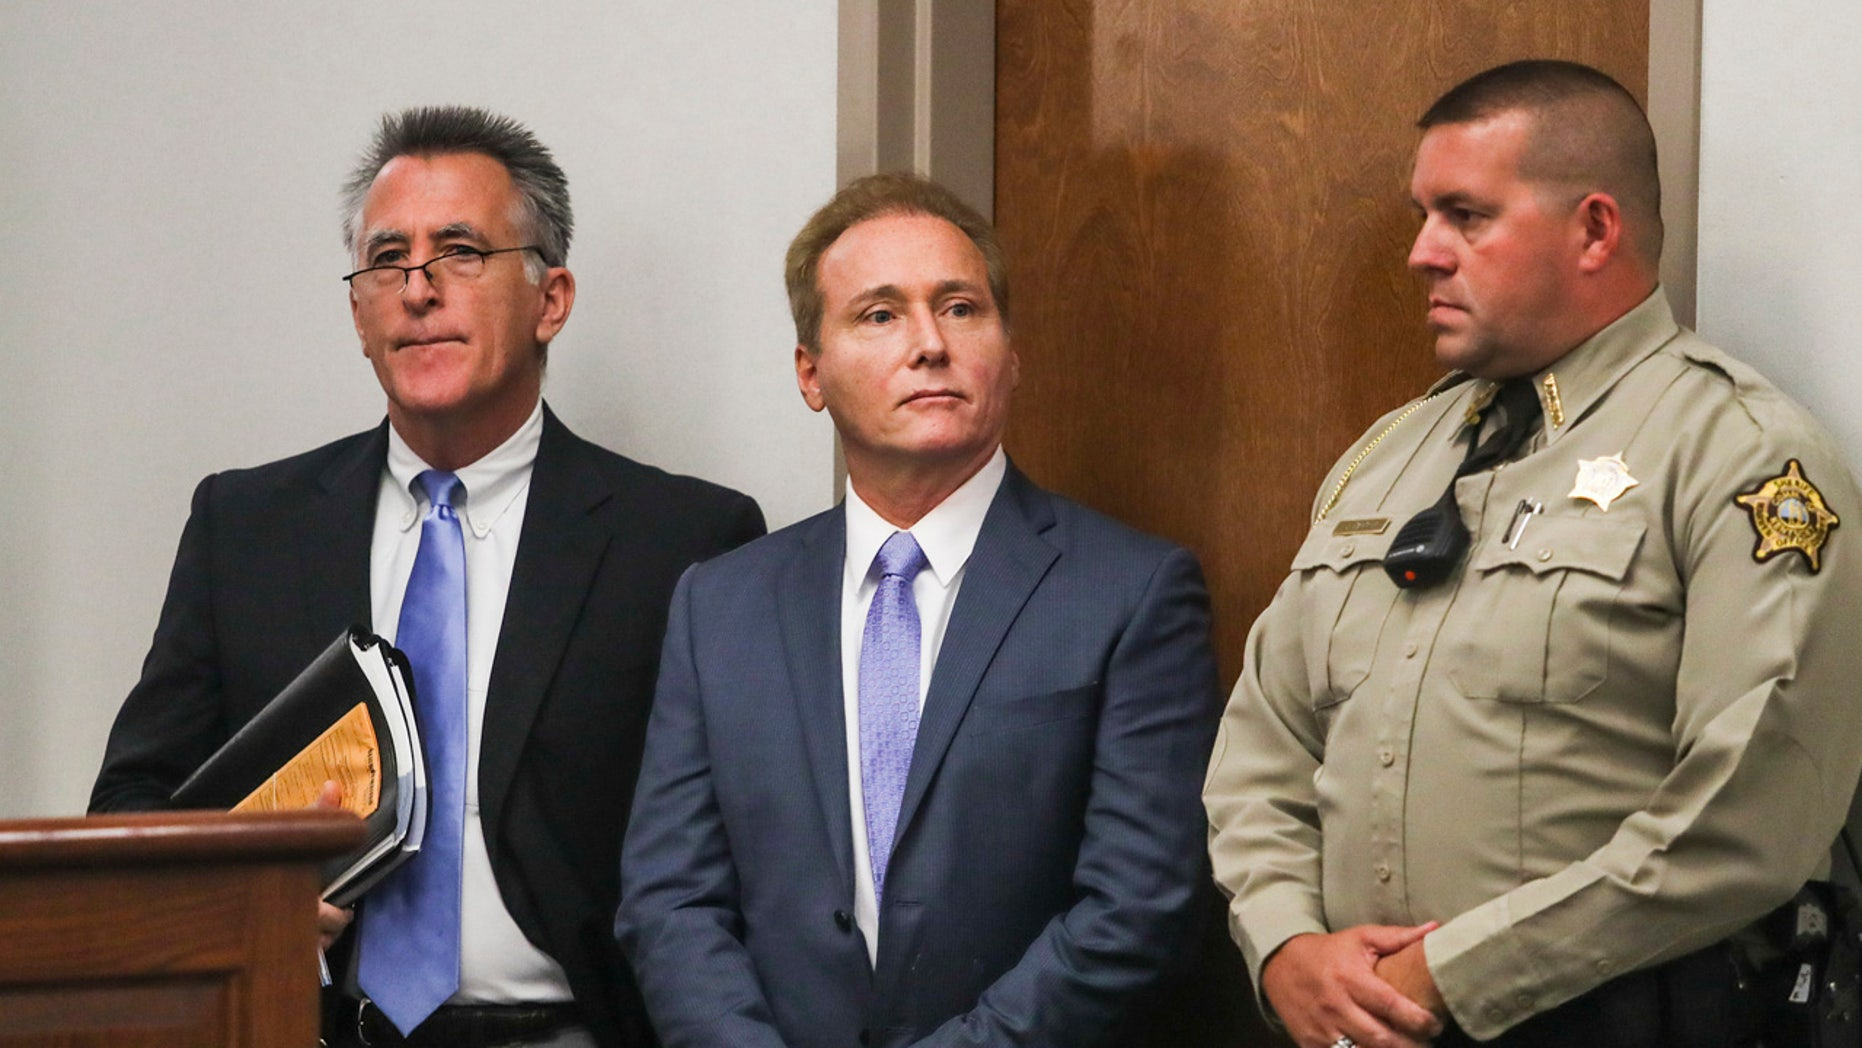 In this Nov. 9 photo, Rene Boucher, center, appears in court for an arraignment hearing with his attorney, Matt Baker, left, at the Warren County Justice Center in Bowling Green, Kentucky.